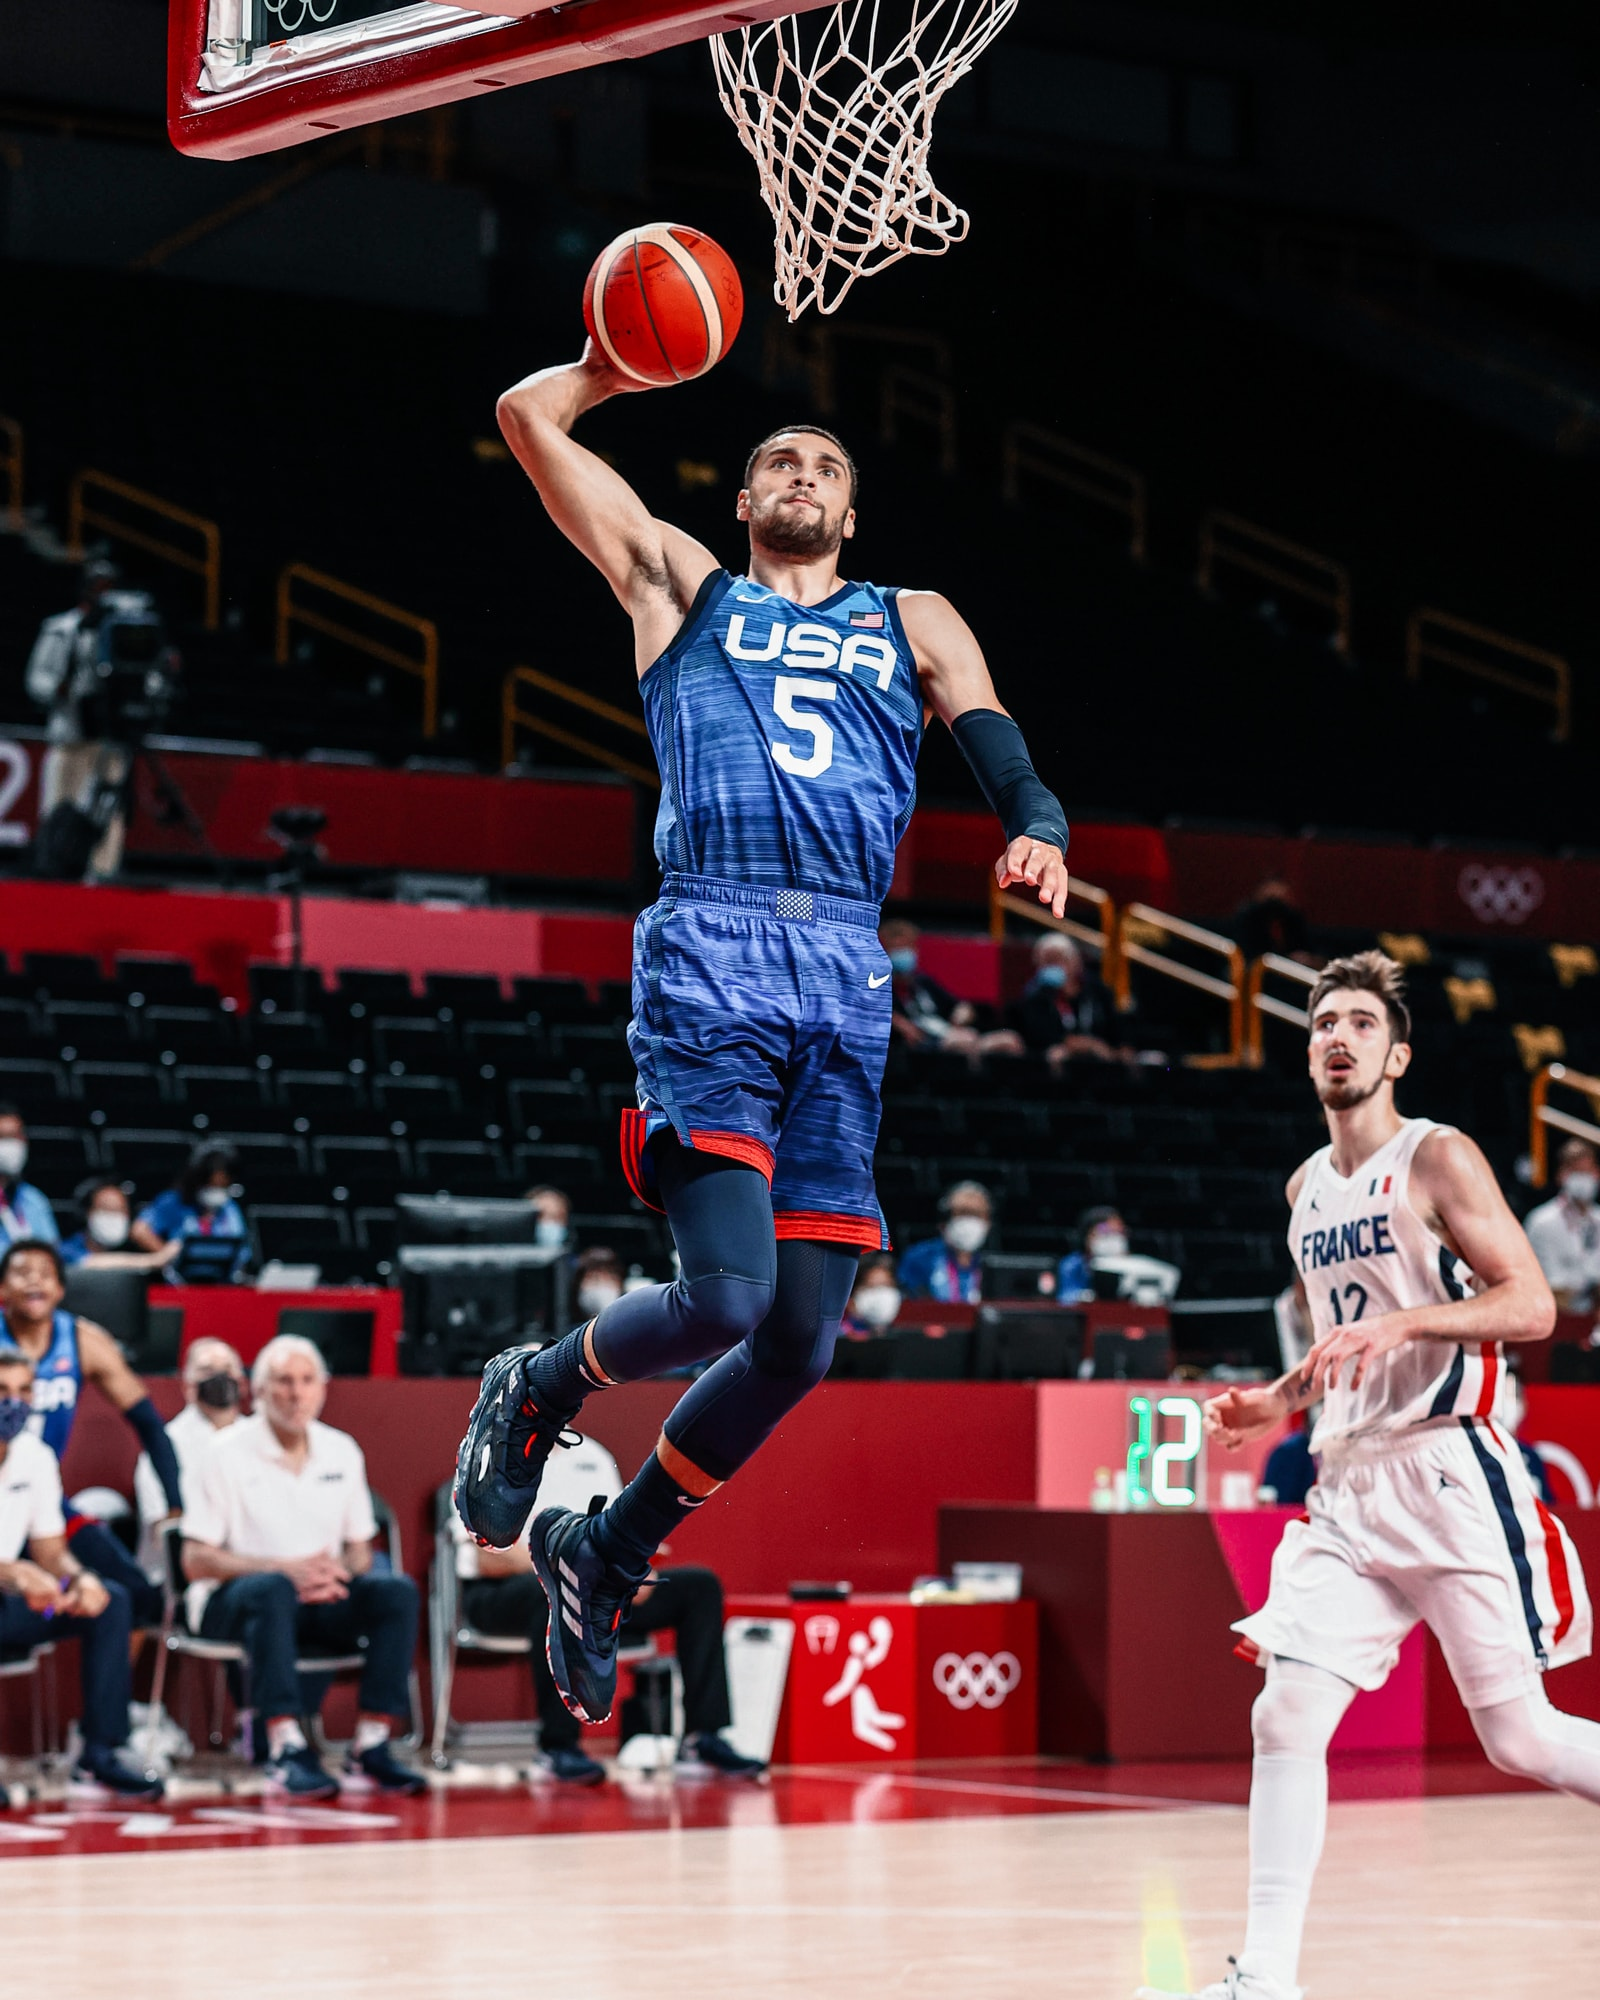 Zach LaVine skies for a breakaway dunk against France in his Olympic debut.